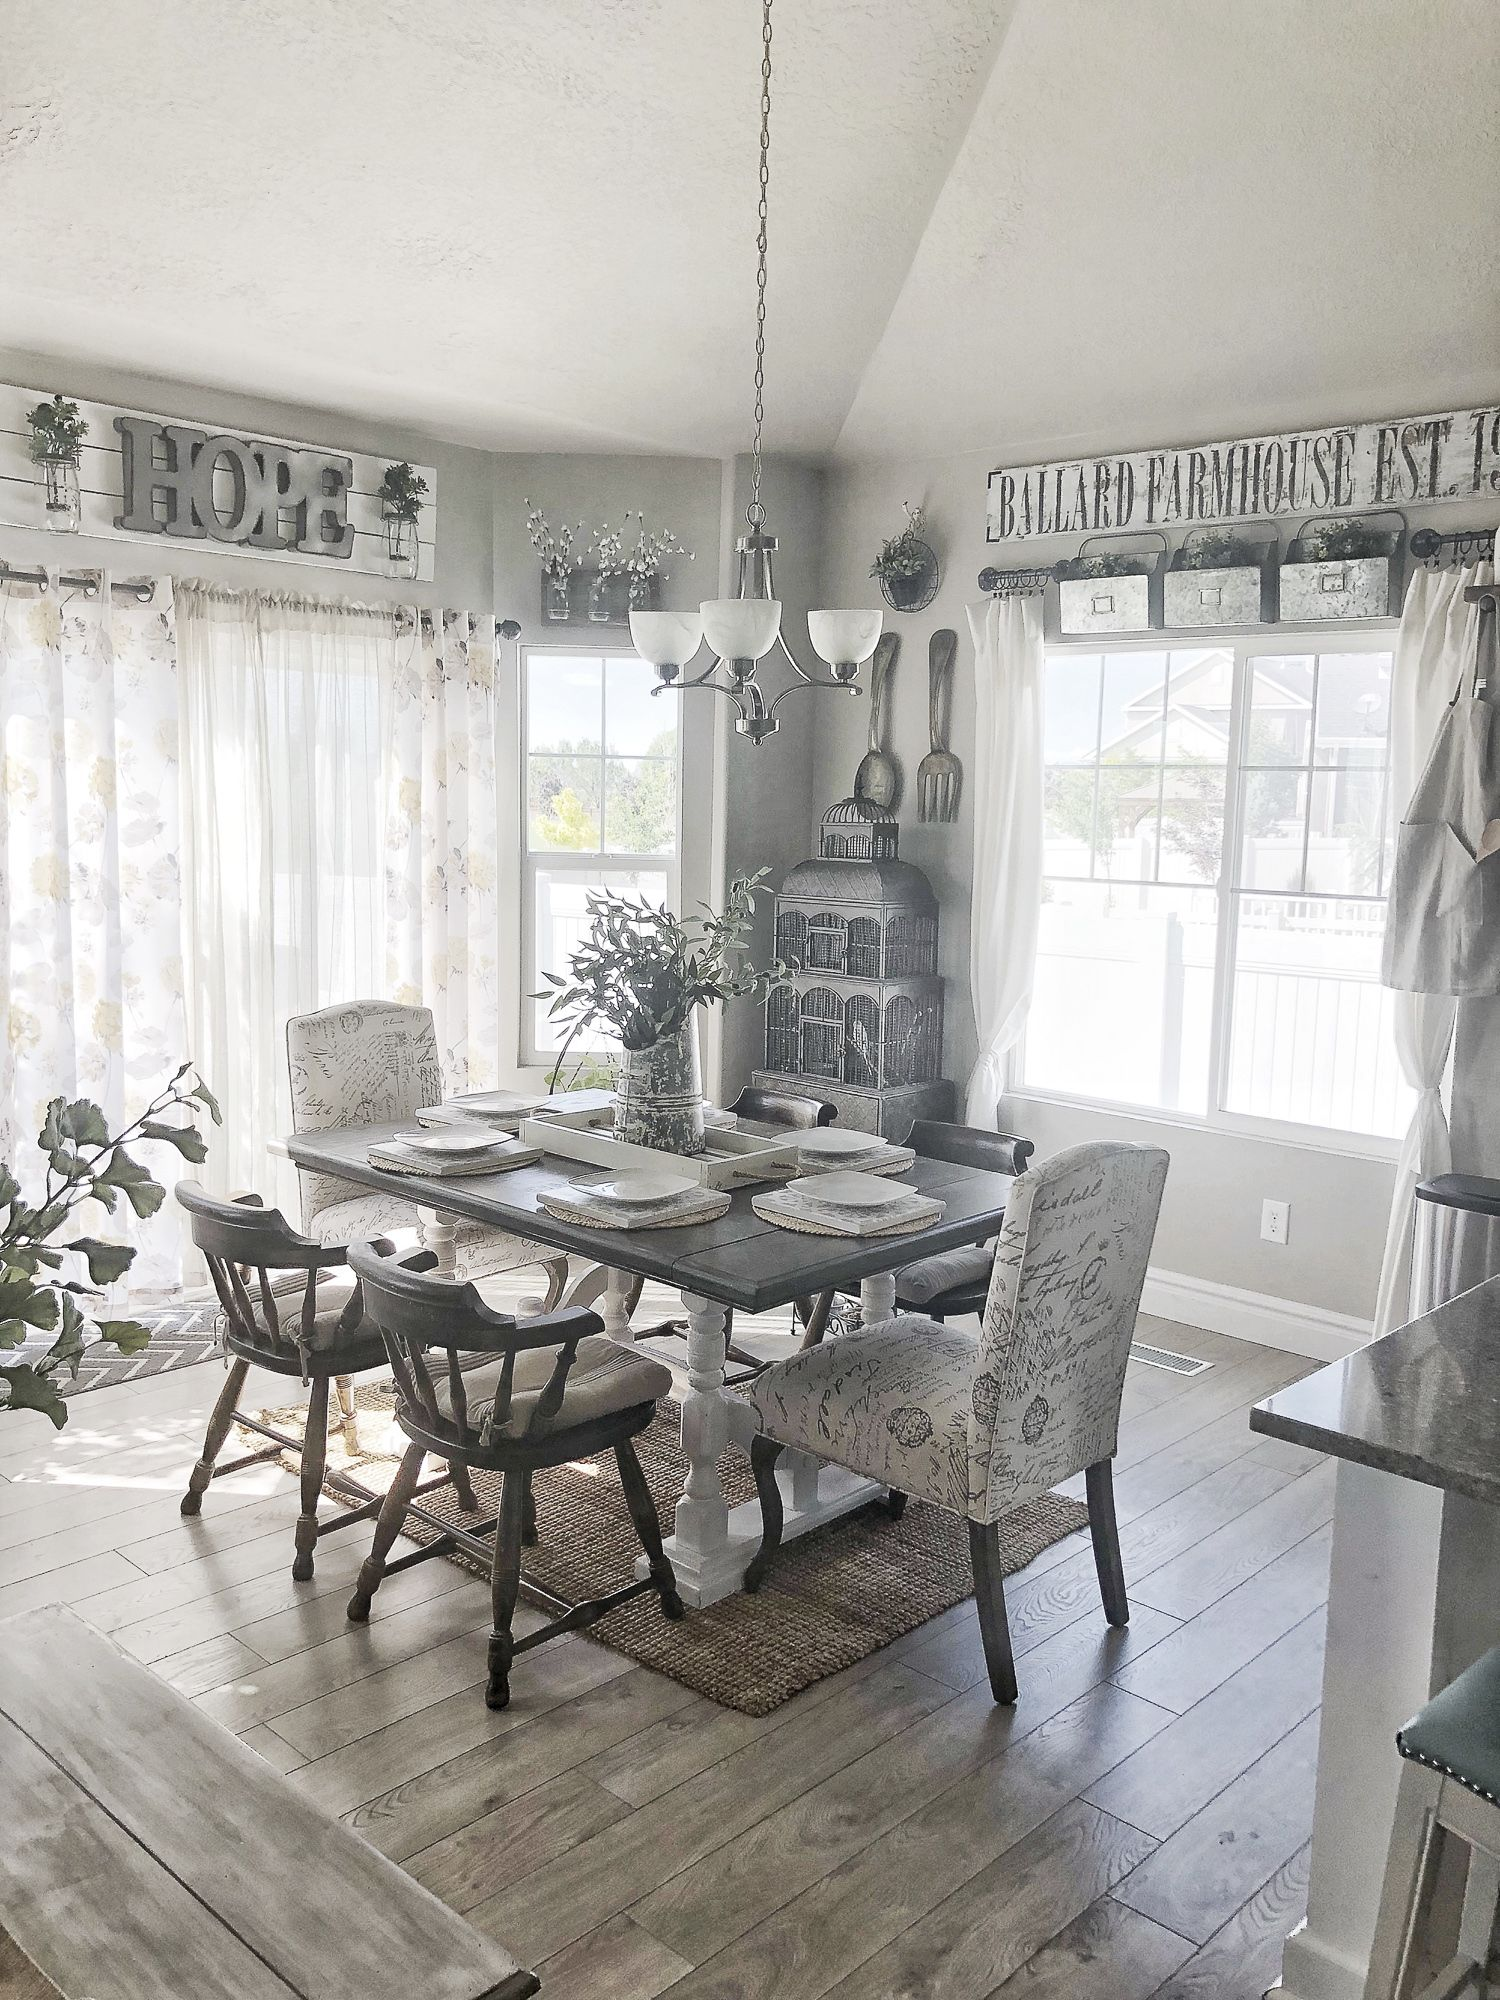 Do You Love The Traditional Farmhouse Design Style It Is One Of My Favorite Styles For Home Design And I Have Some Amazing Country House Decor Home Home Decor